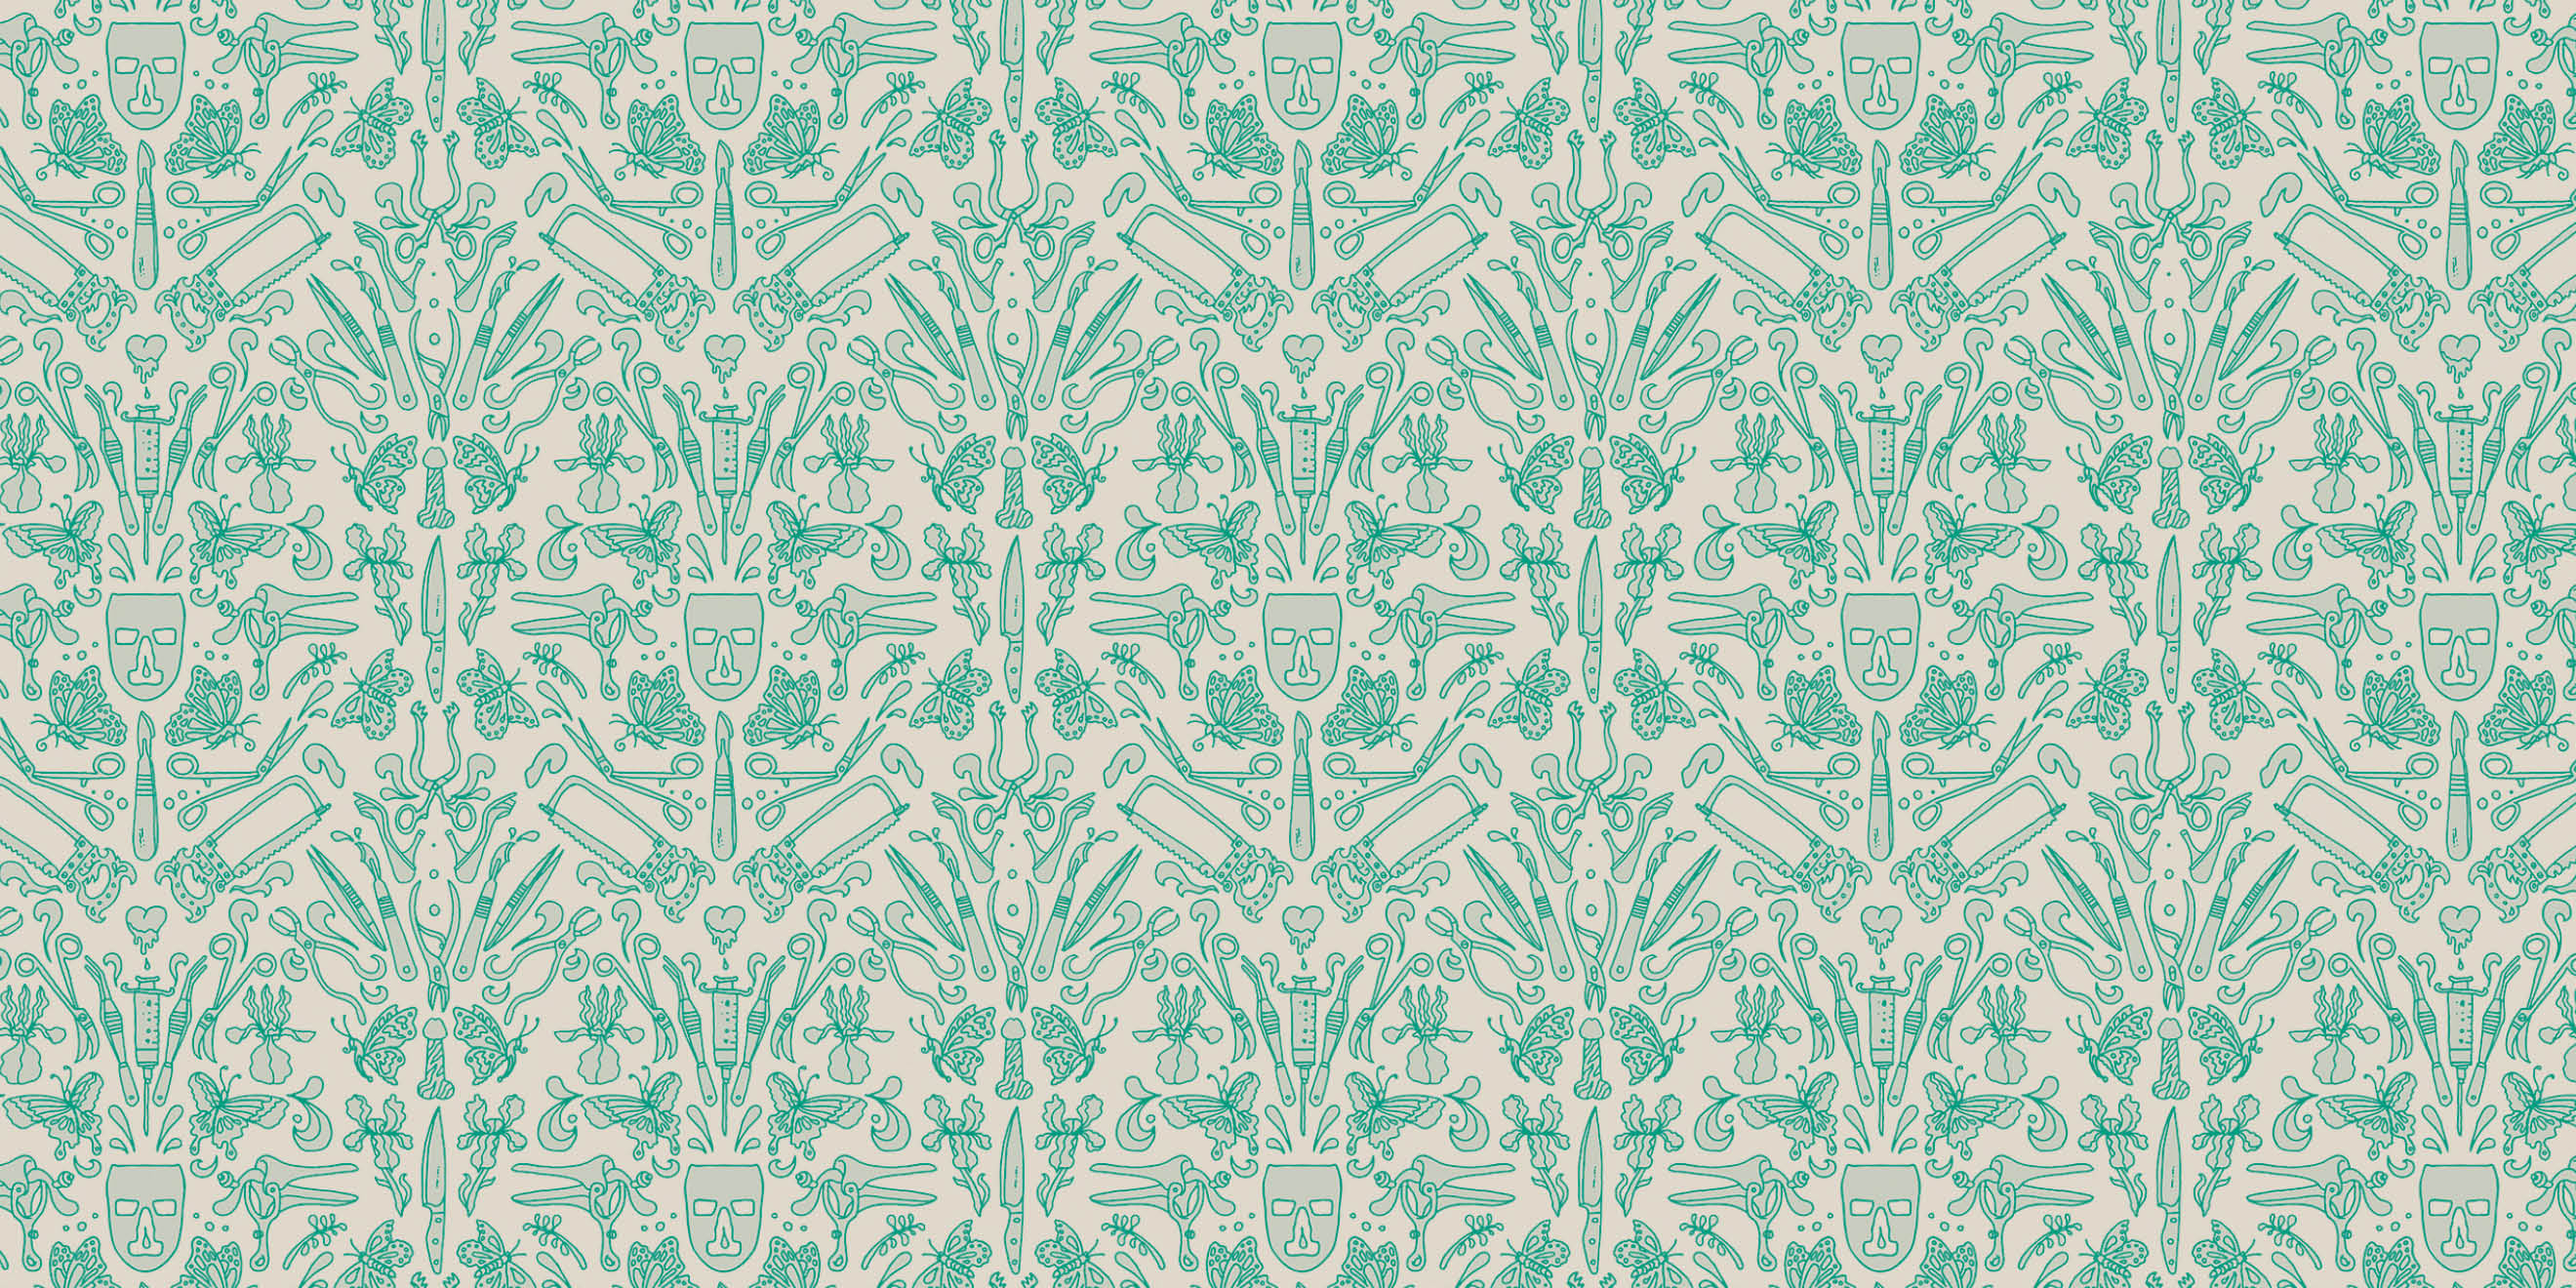 Little White Lies wallpaper pattern by Human After All Creative Director Paul Willoughby - image 4